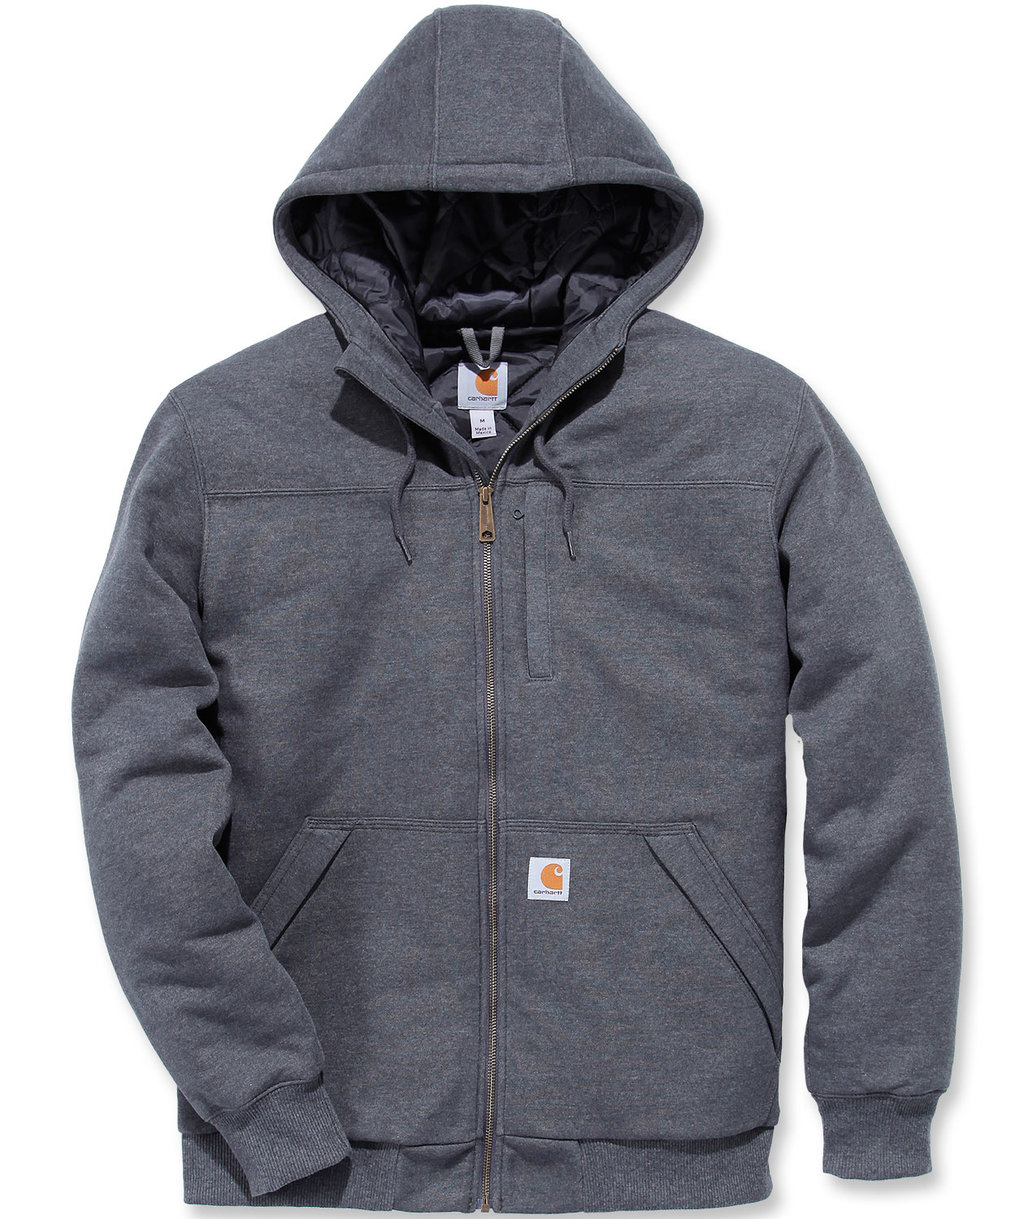 Carhartt Rockland hættetrøje, Carbon Heather